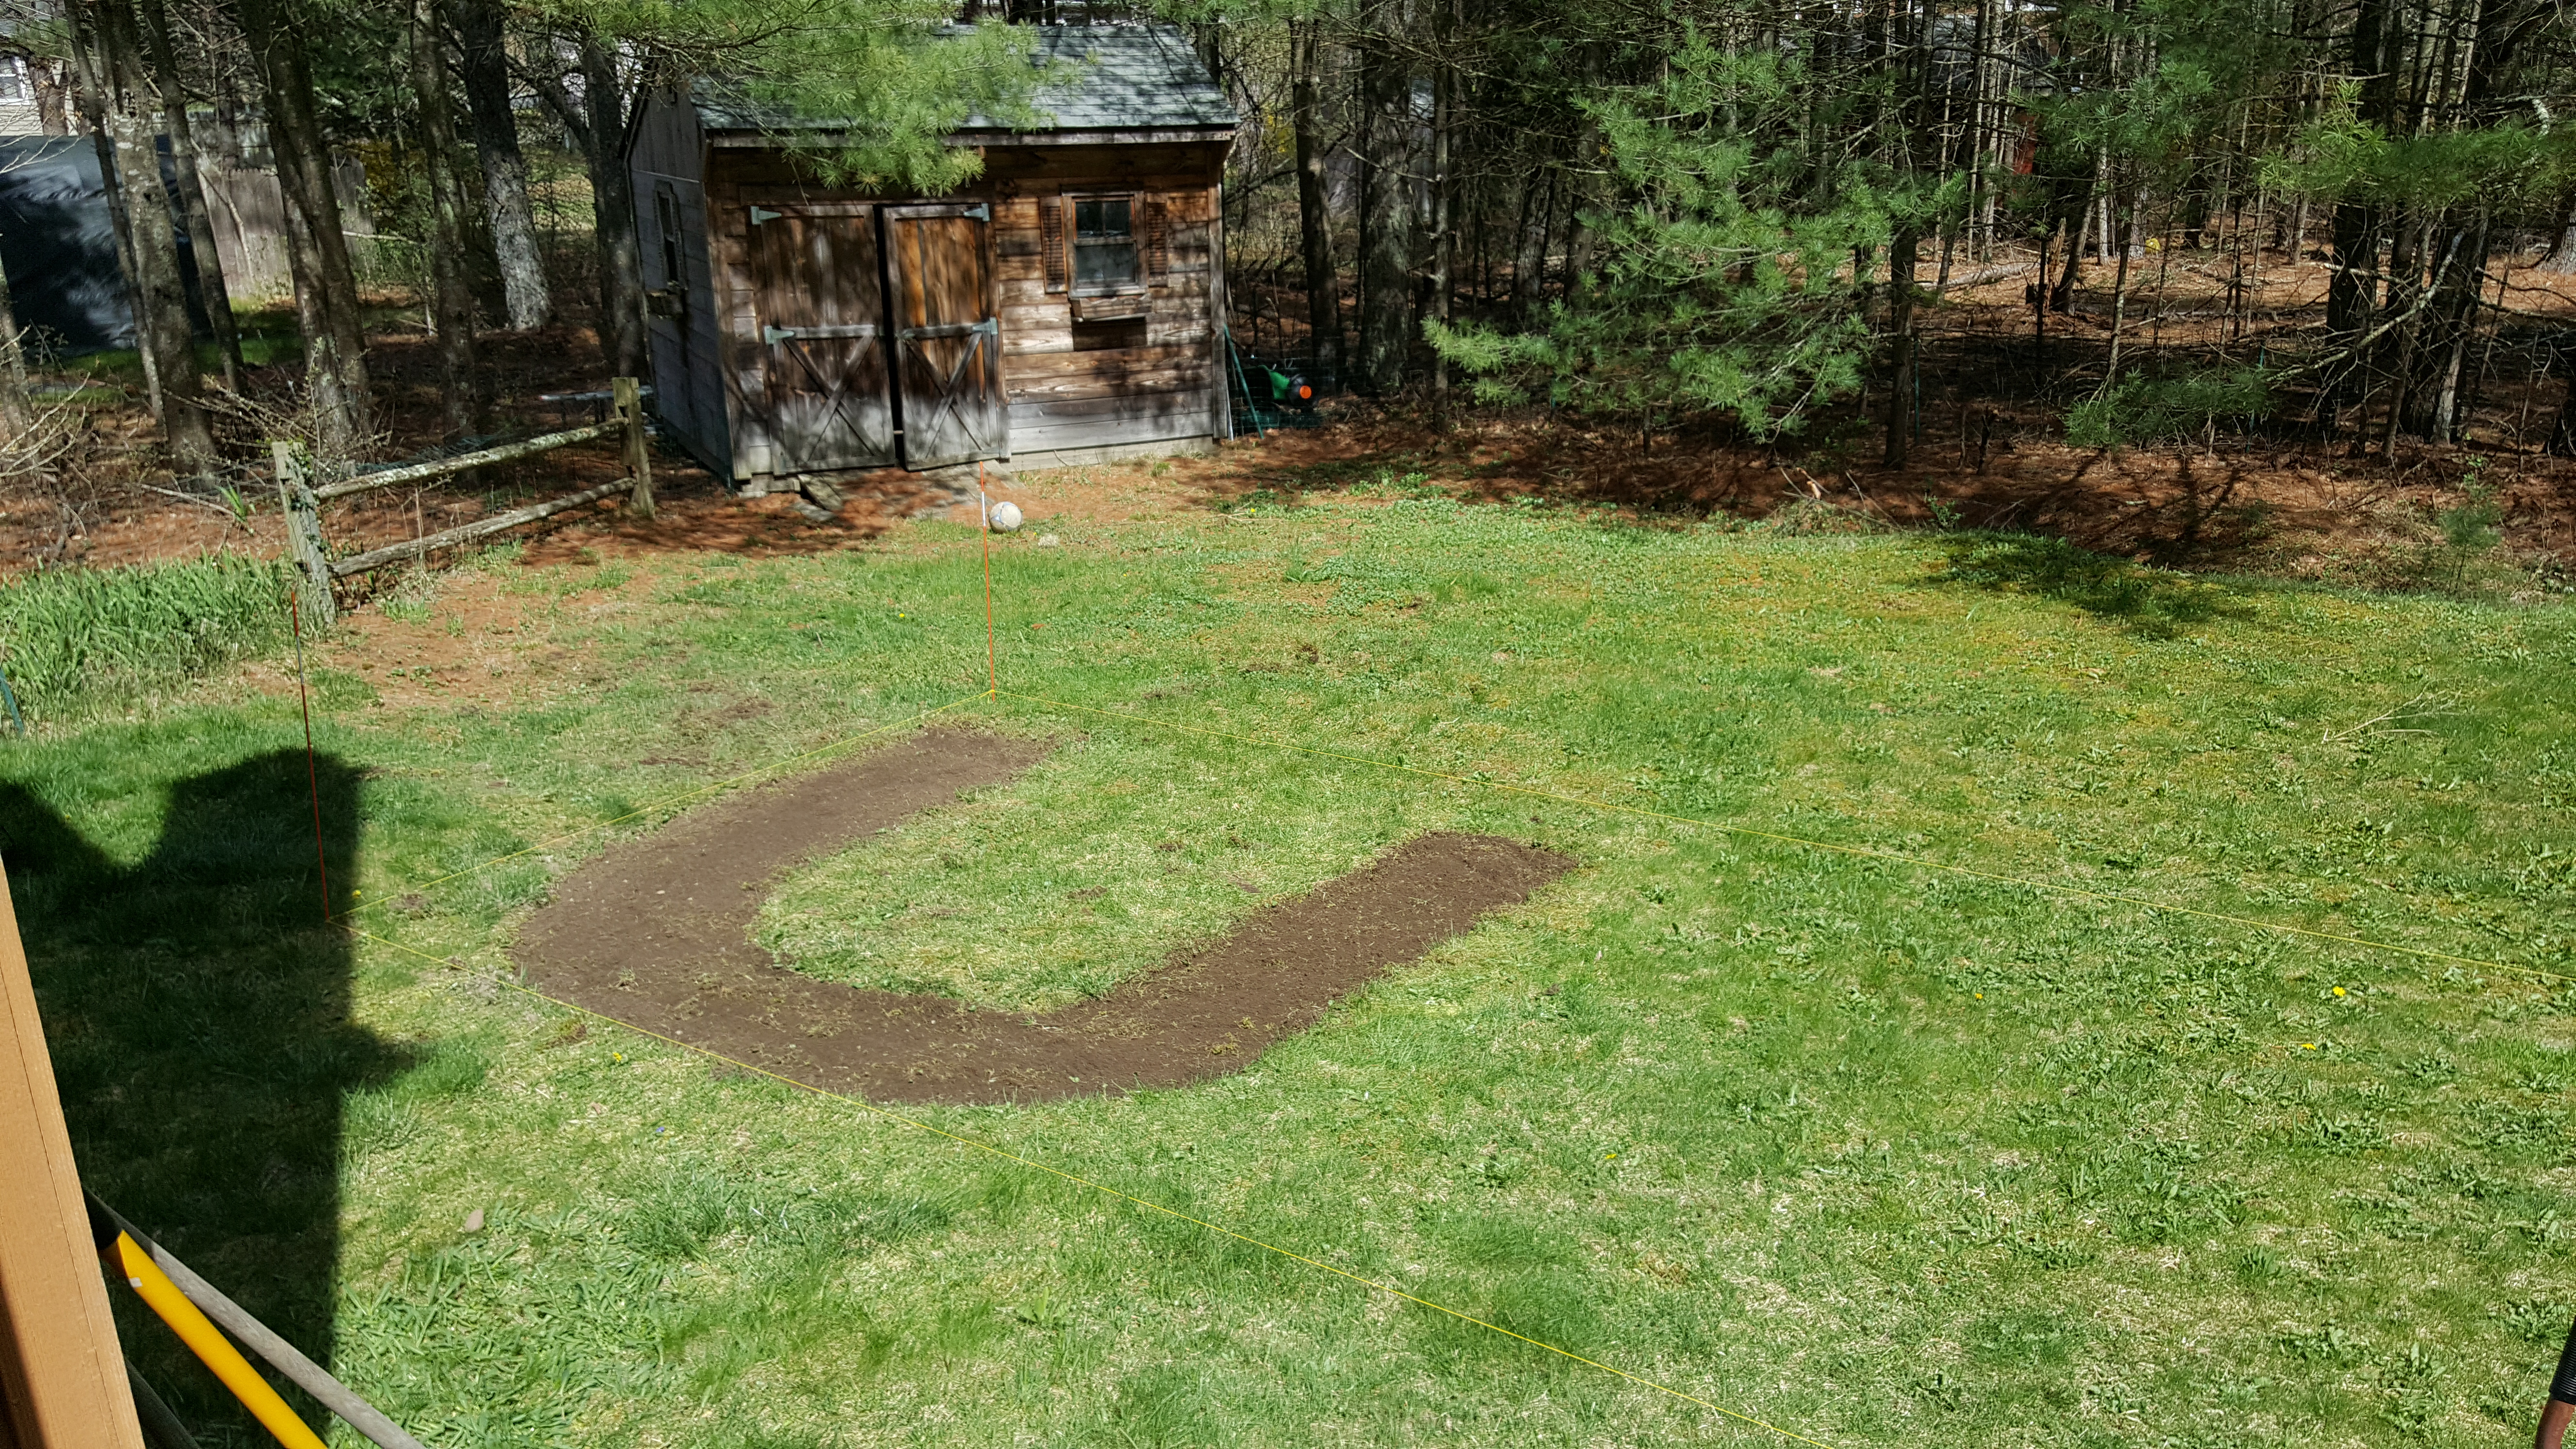 A letter 'U' cut into a green lawn. Looks about 6 feet each legs, the exposed earth is dark, slightly damp looking soil. There is a shed in the background.